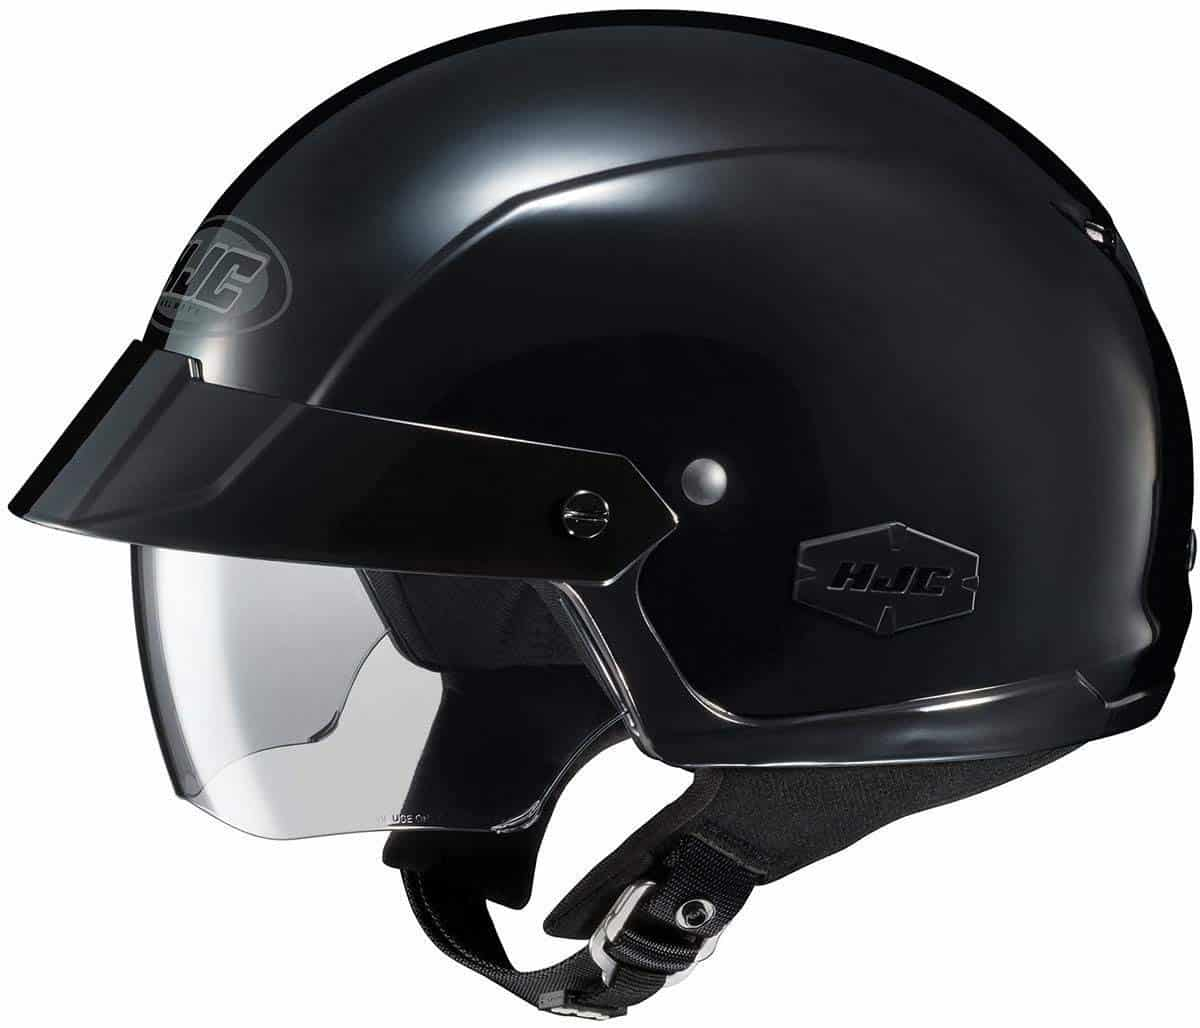 HJC Solid IS-Cruiser Half Shell Motorcycle Helmet